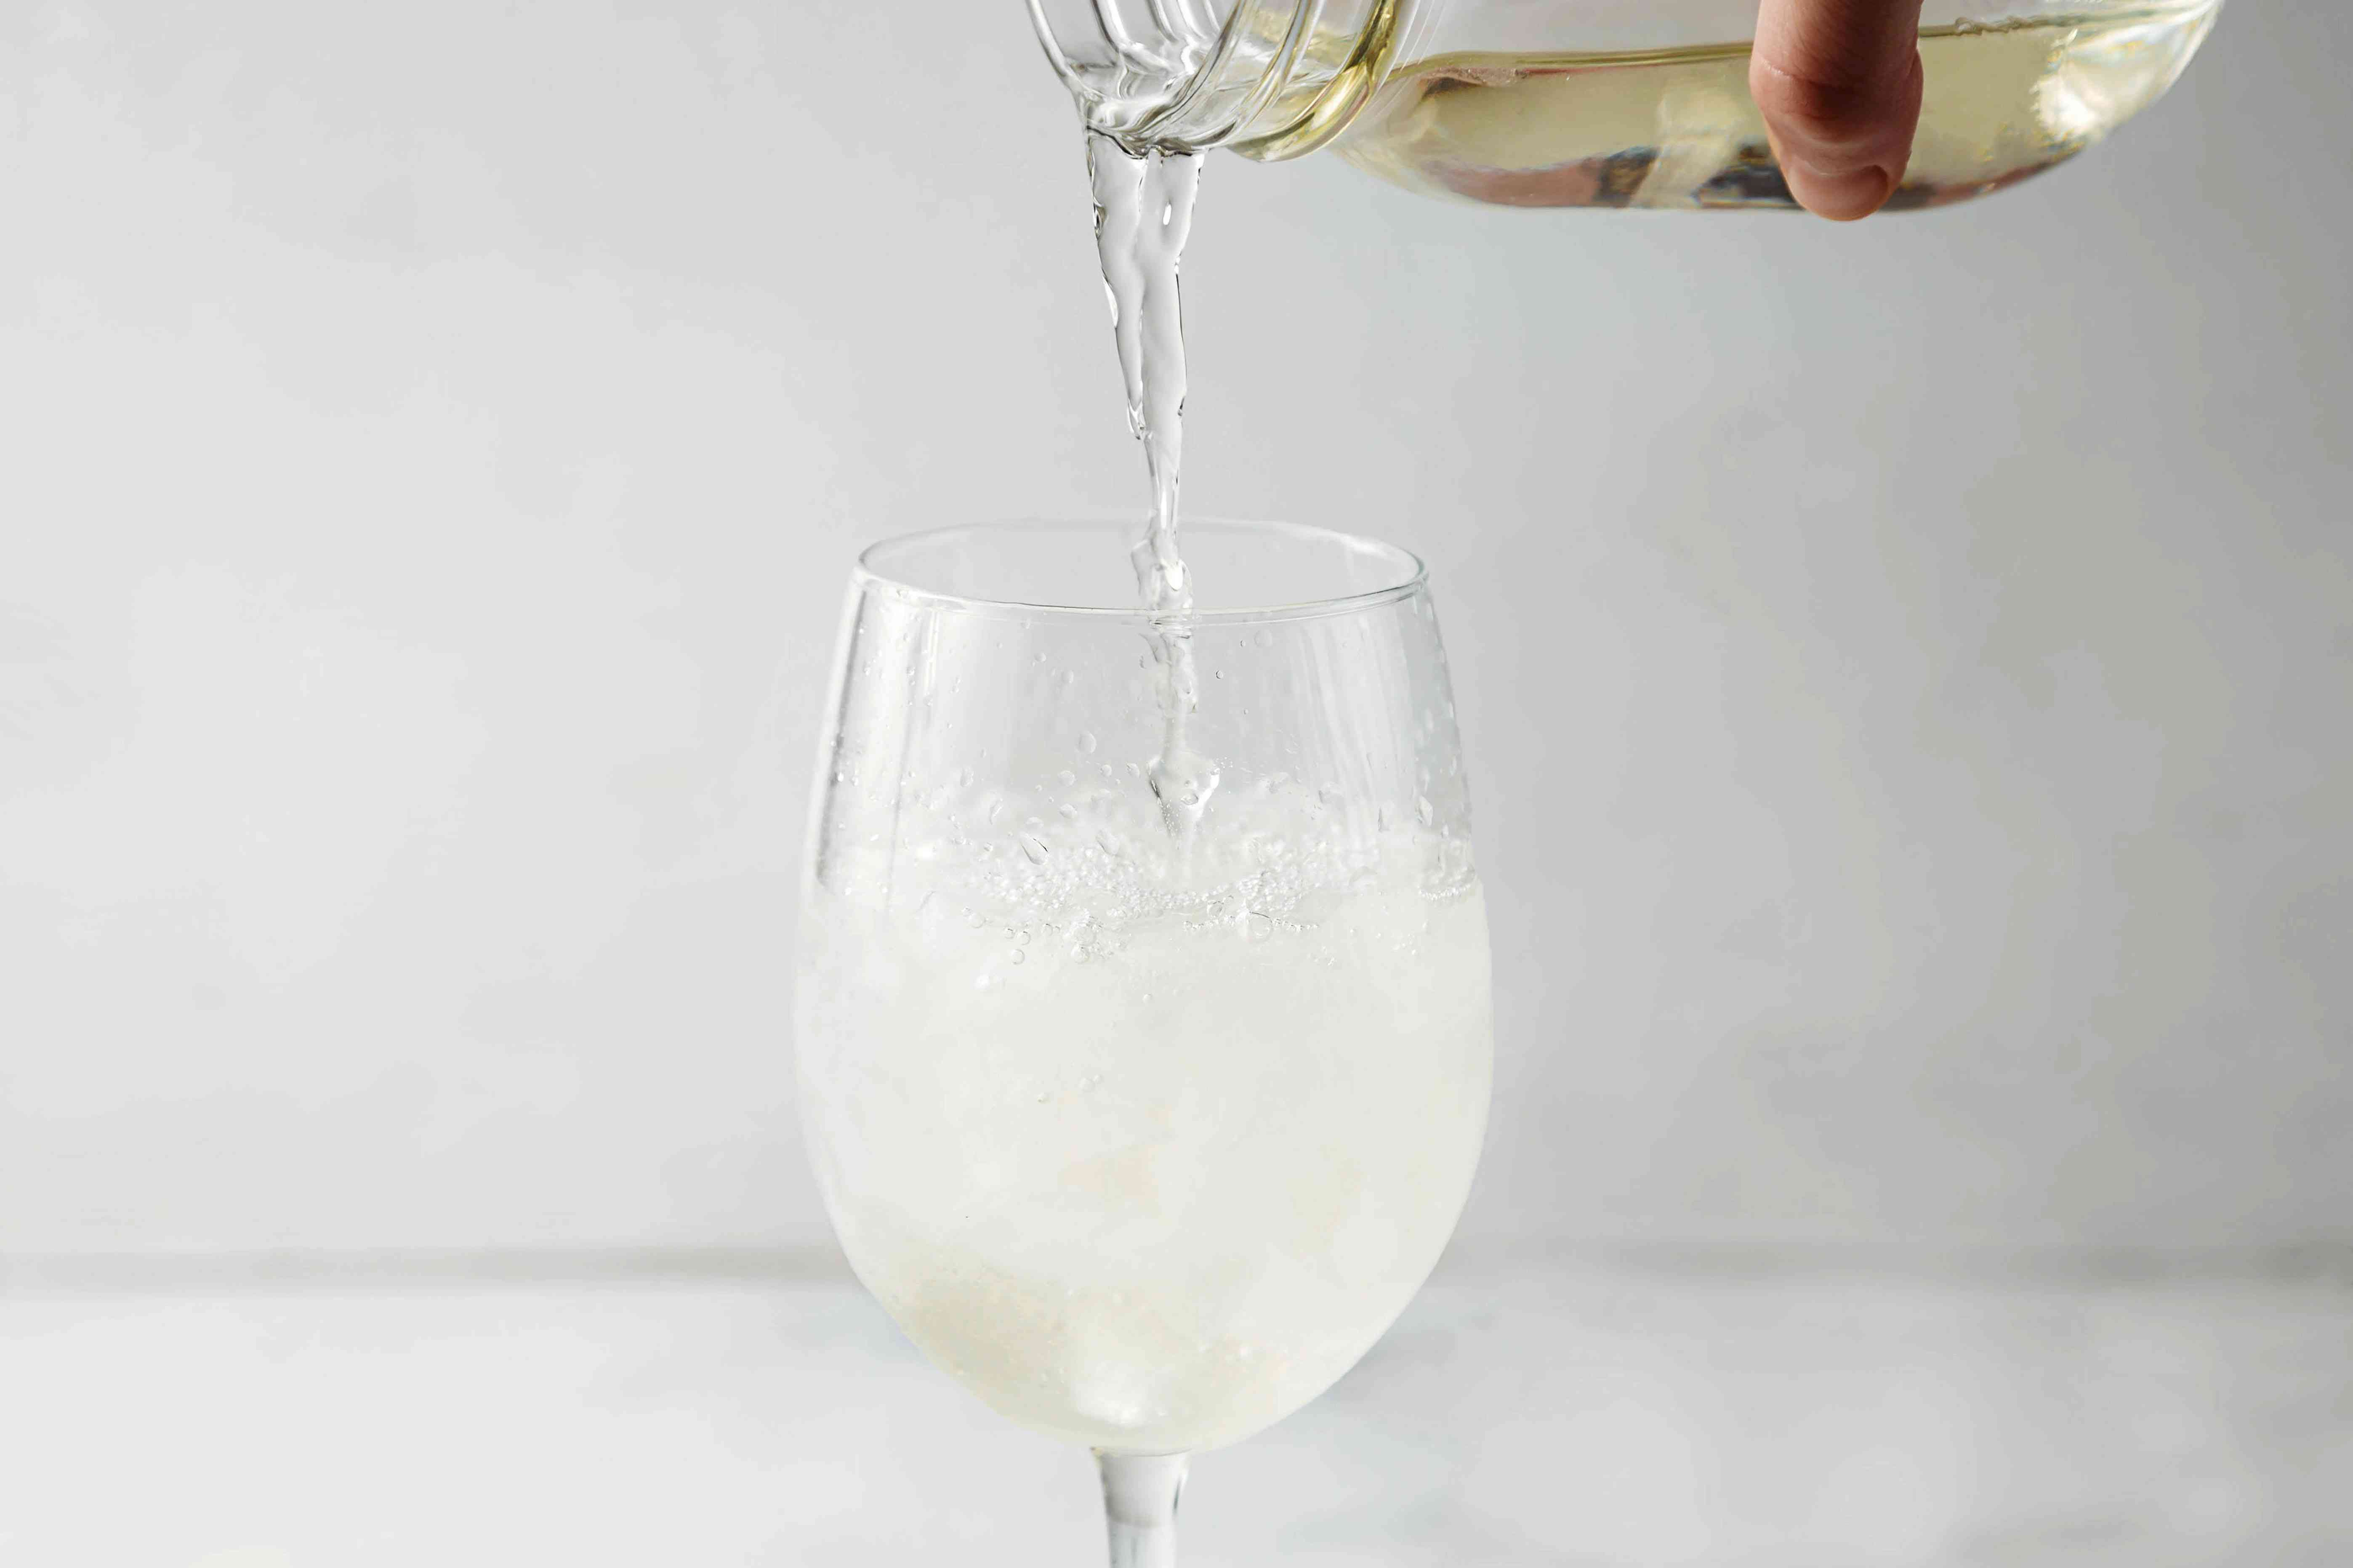 Wine poured into a glass with ice